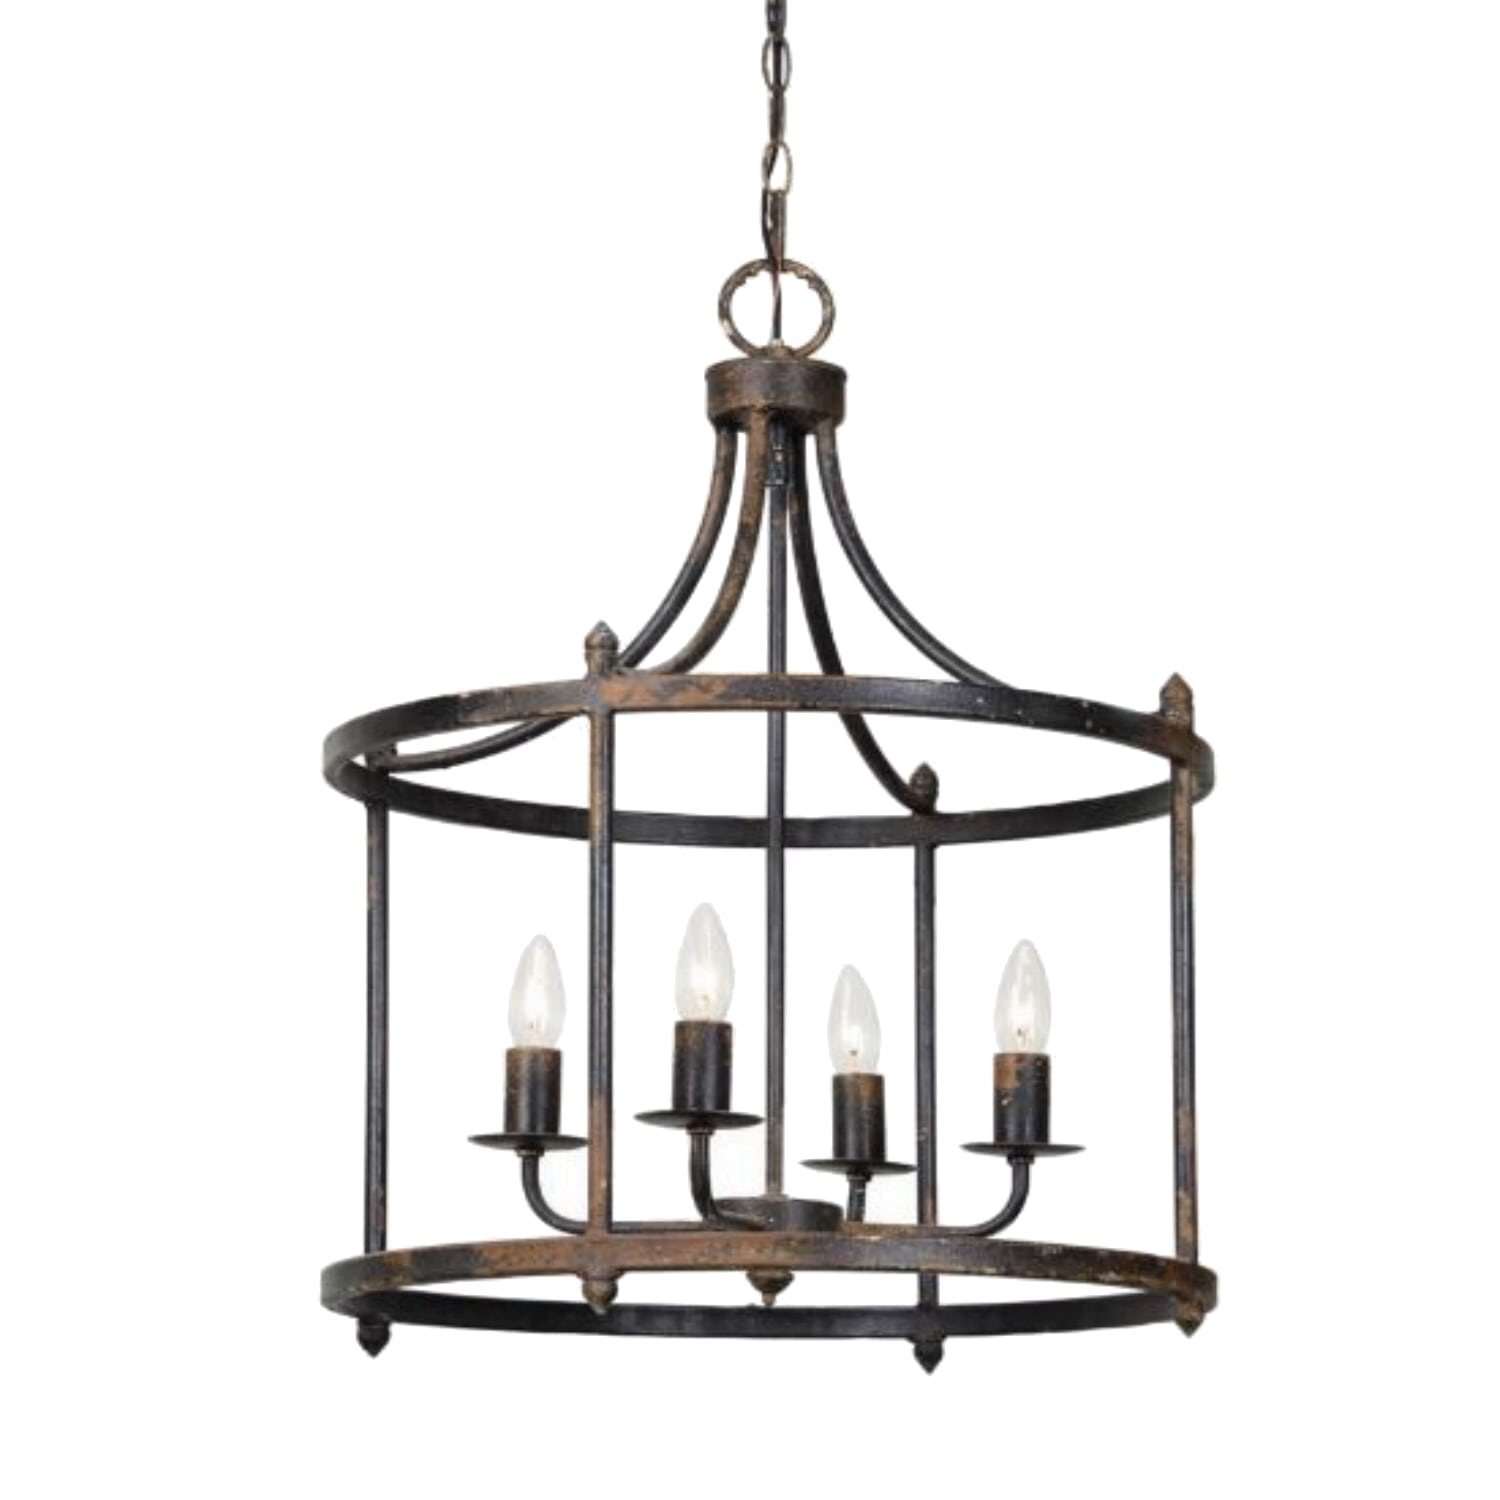 The Virginia Round Chandelier Kitchen Or Hall Pendant